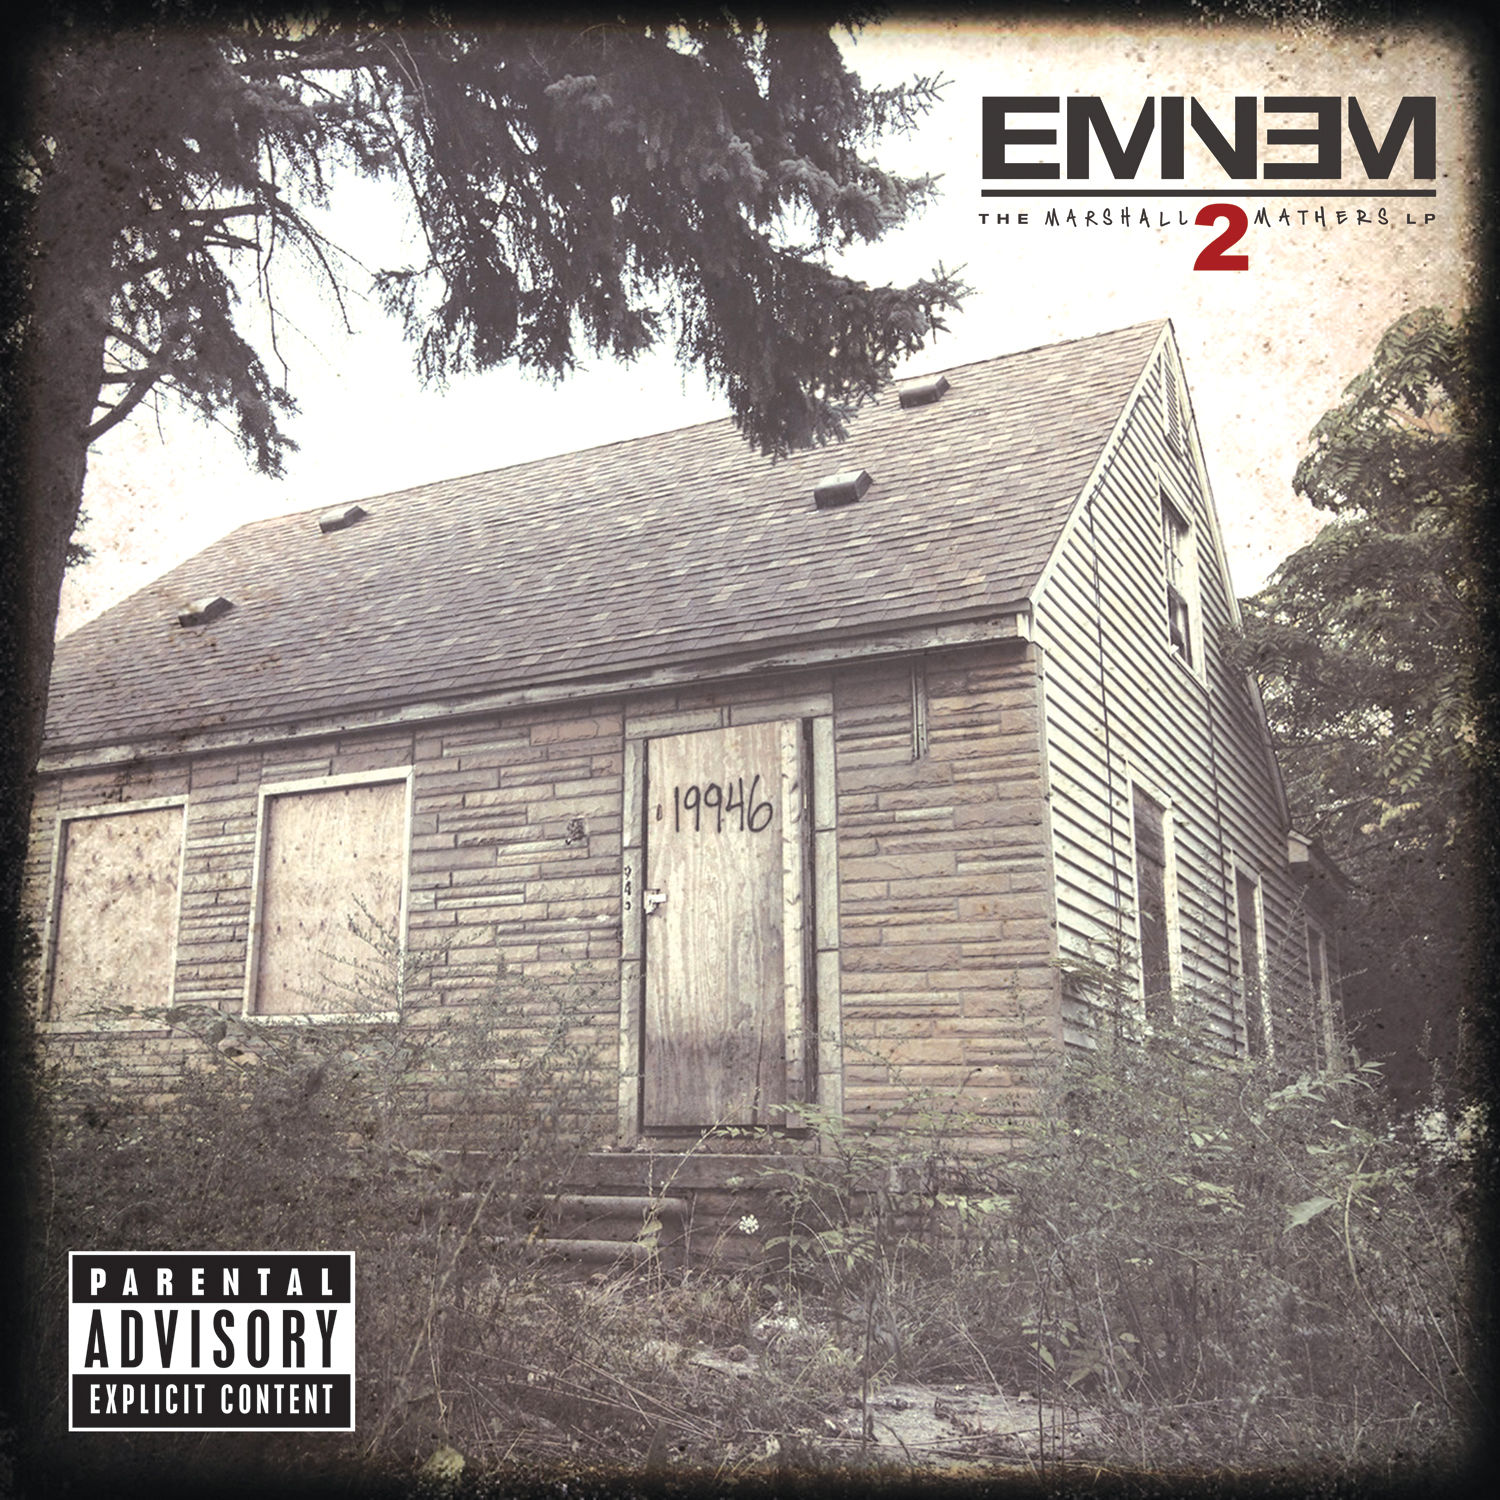 Curtain call the hits deluxe version itunes plus m4a album - Eminem The Marshall Mathers Lp 2 Deluxe Itunes Plus Aac M4a